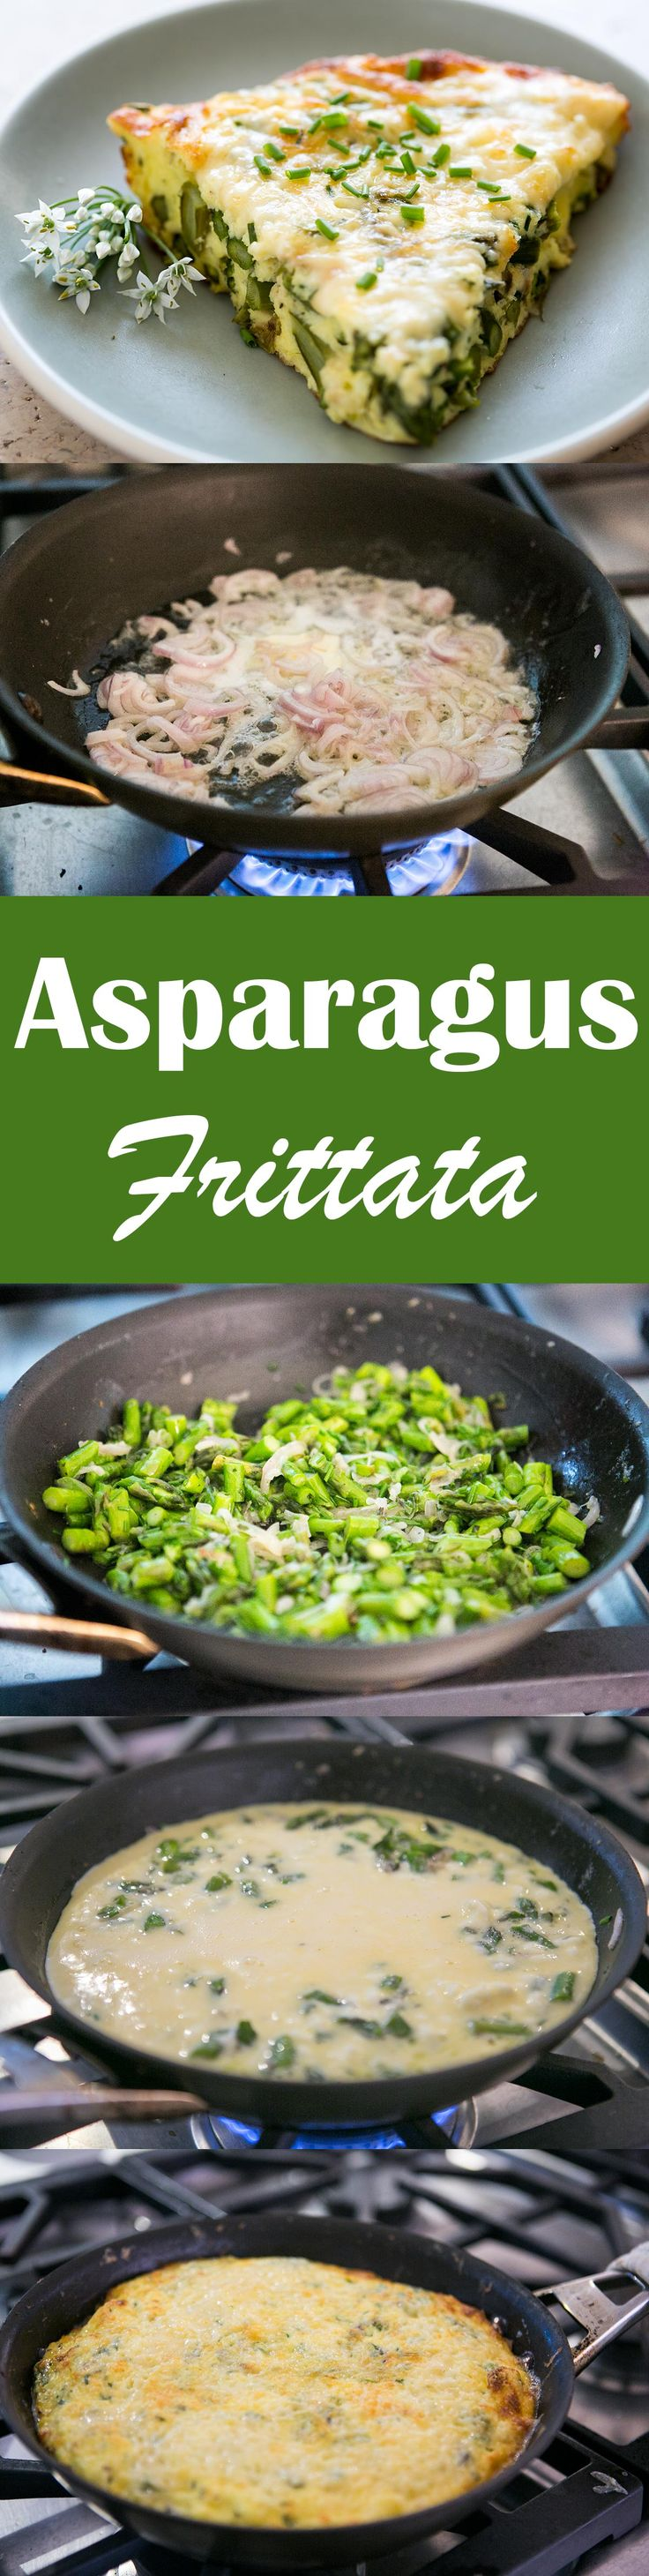 Best 25+ Breakfast frittata ideas on Pinterest | Frittata ...